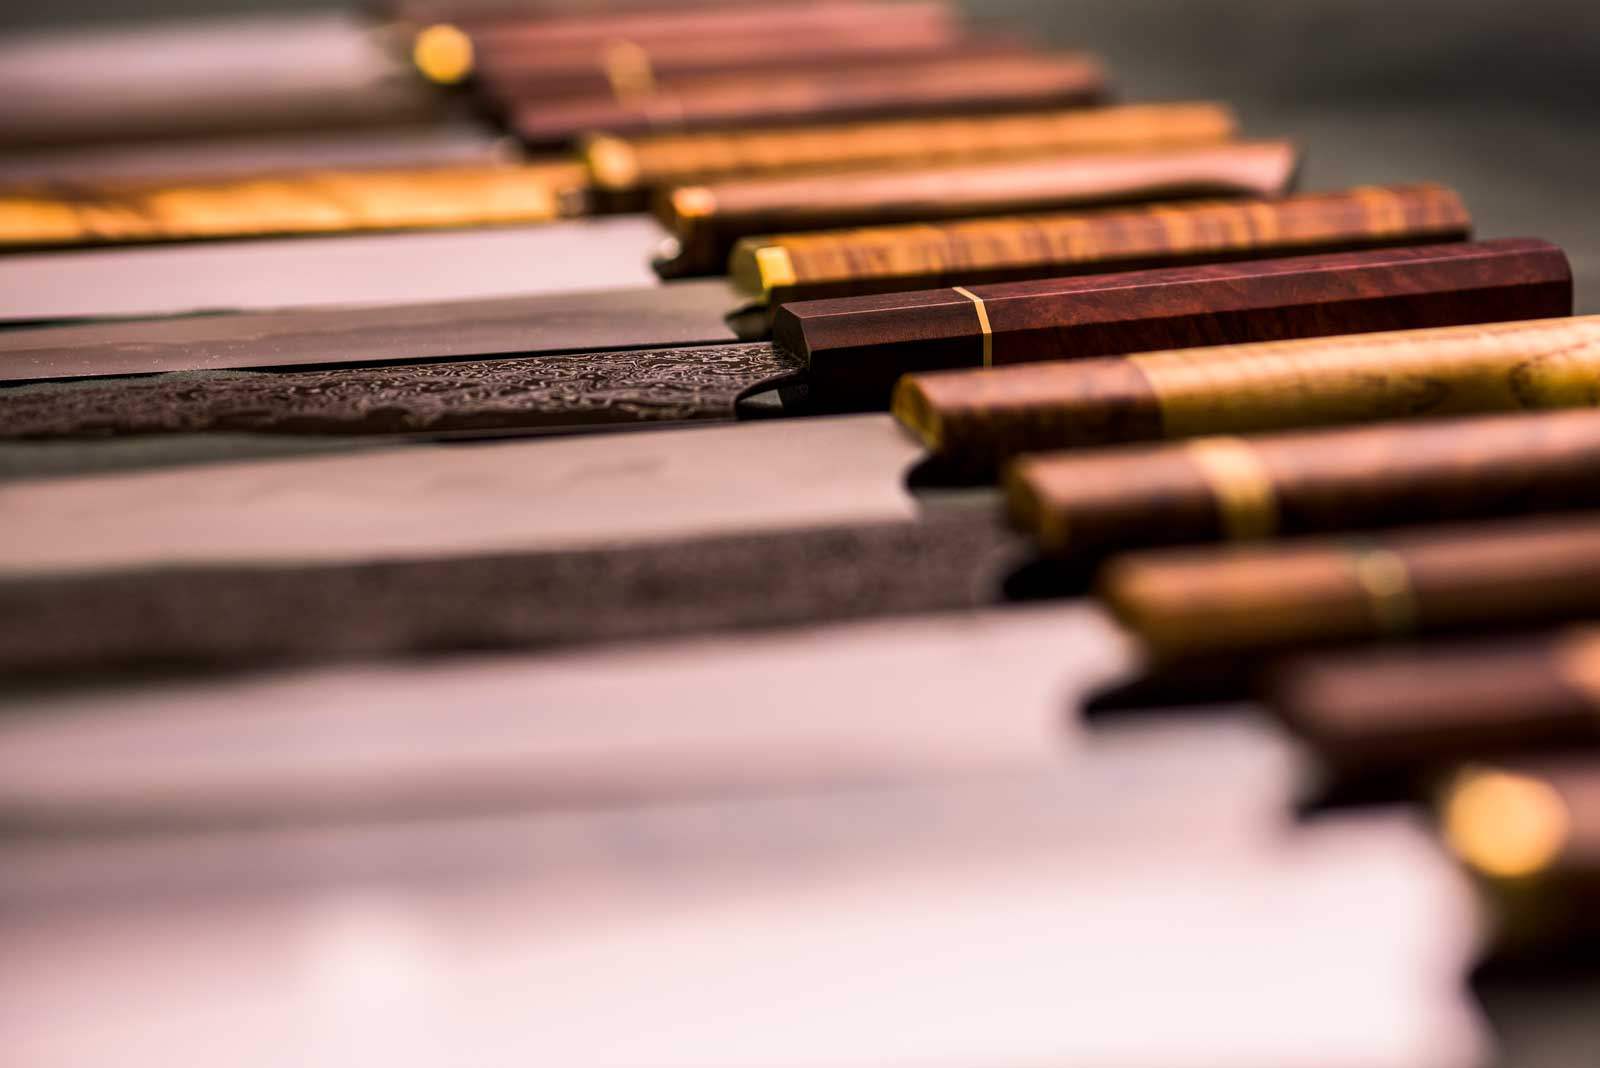 Row of knives with centre knife being point of focus.